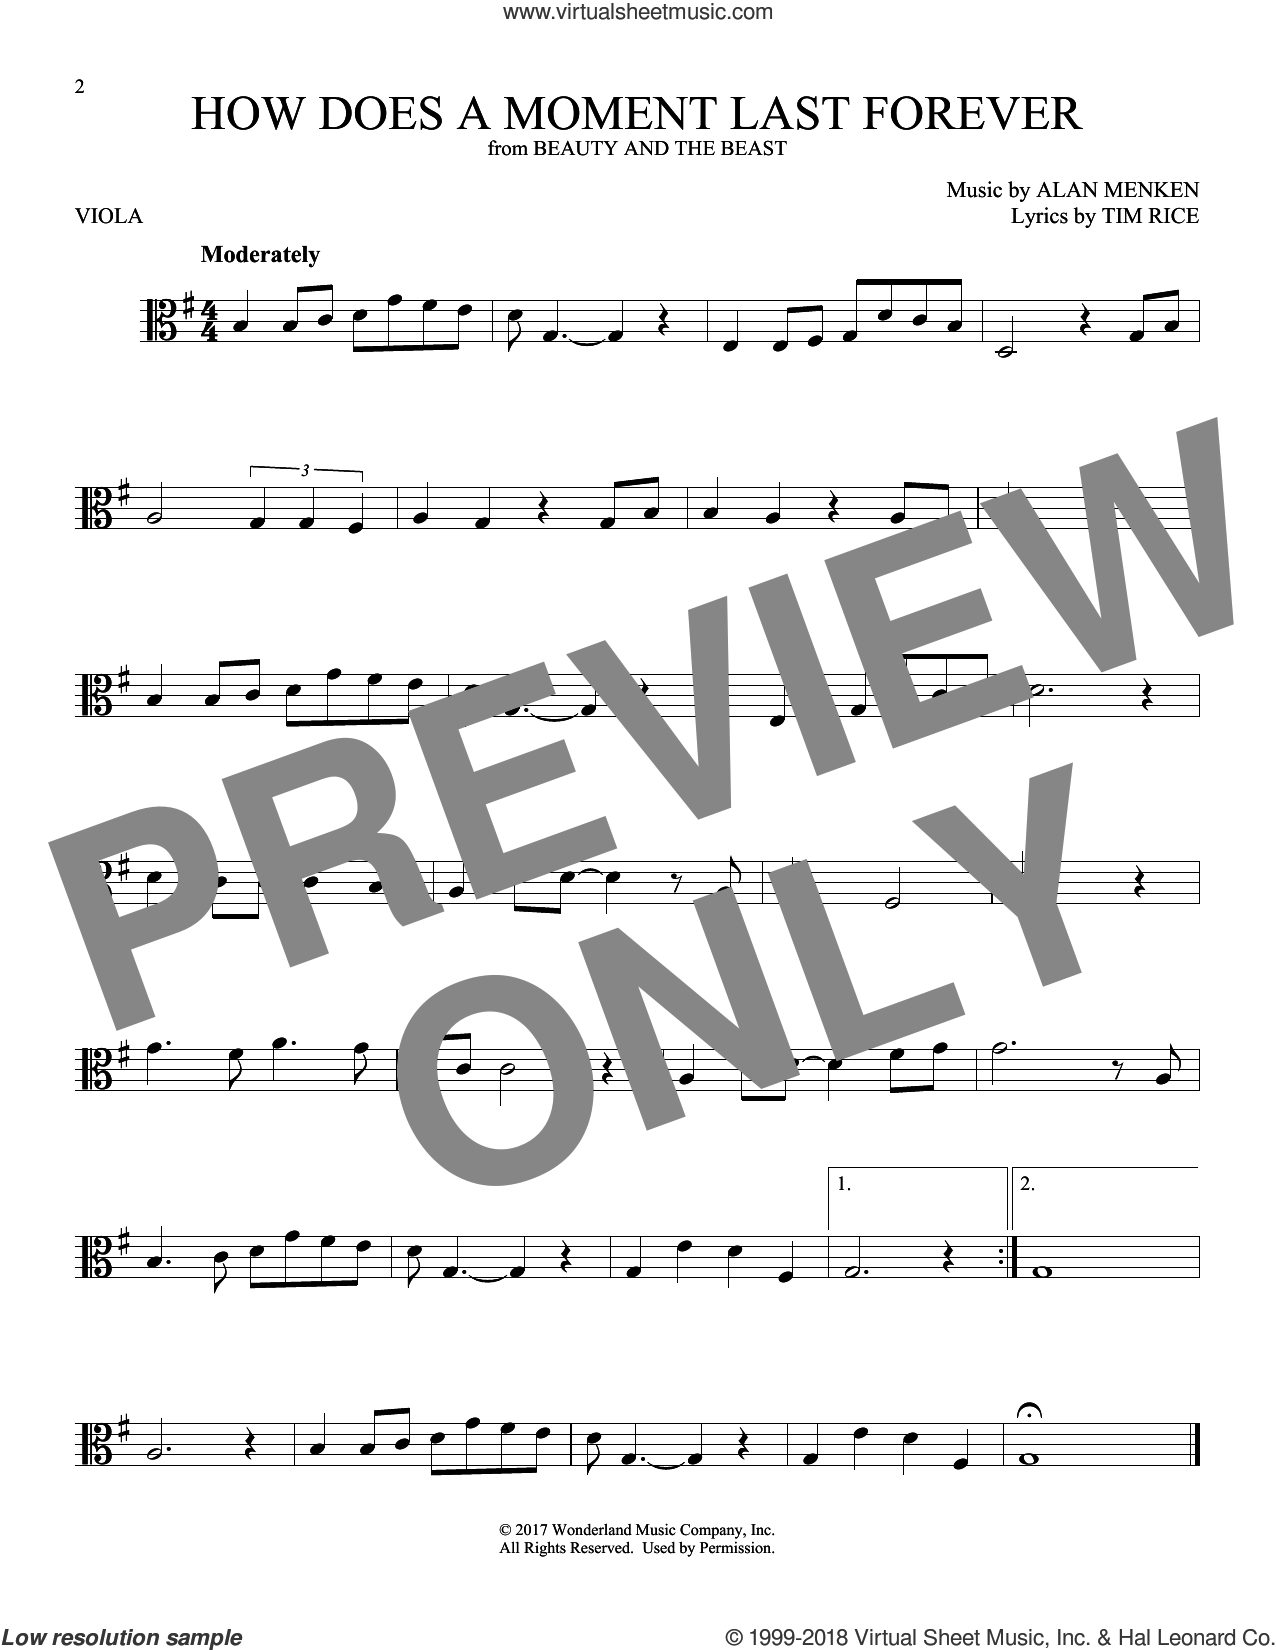 How Does A Moment Last Forever sheet music for viola solo by Alan Menken and Tim Rice, intermediate skill level